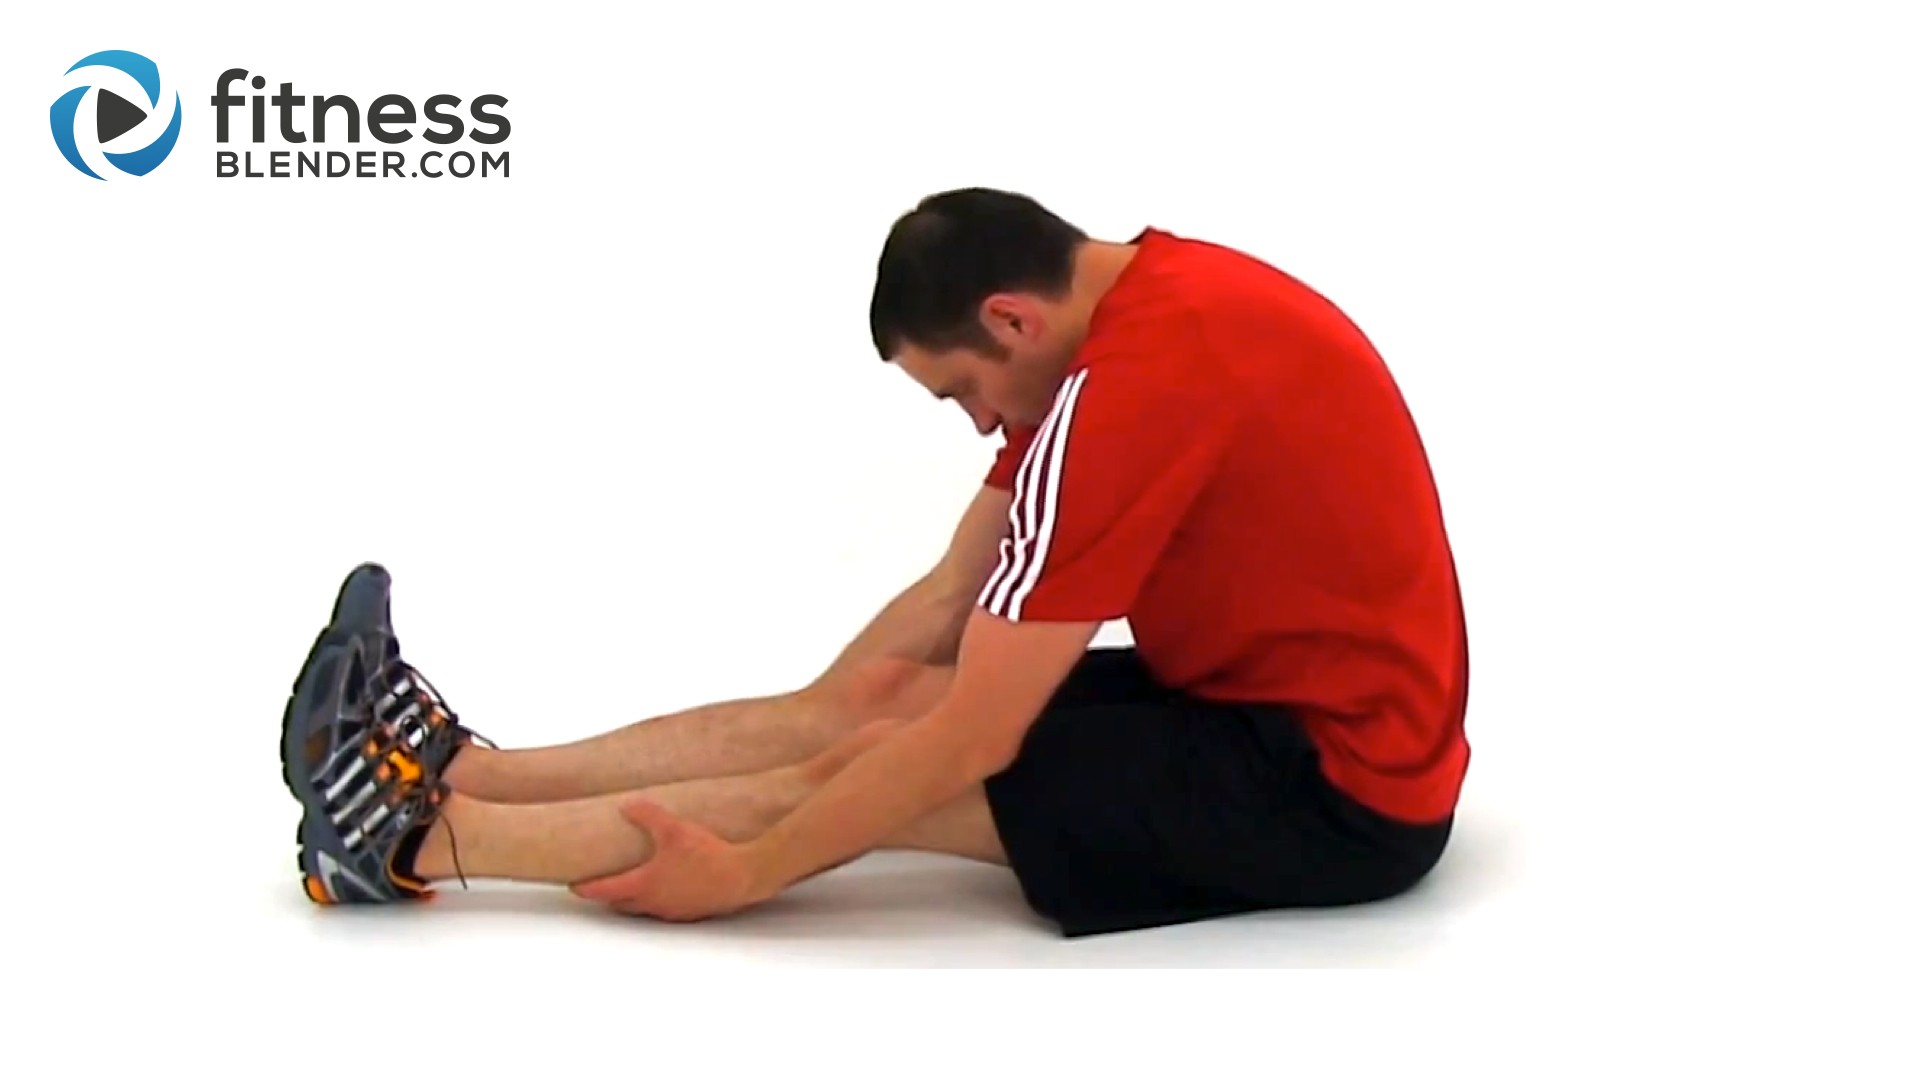 Lower Back Stretching Routine Fitness Blender